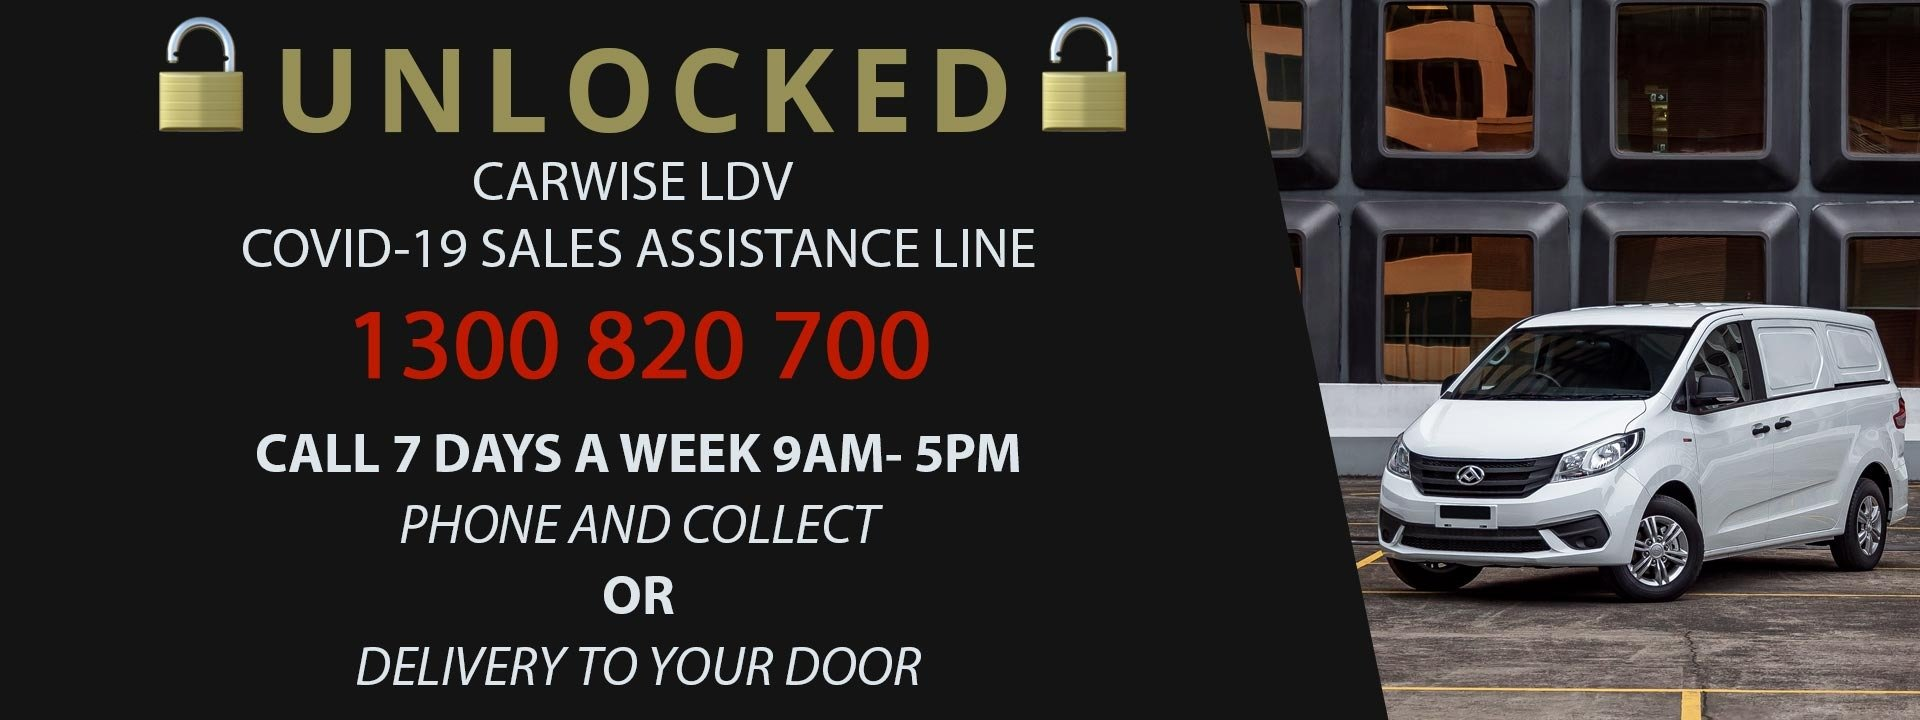 Carwise LDV COVID-19 Sales Assistance Line: 1300 820 720.